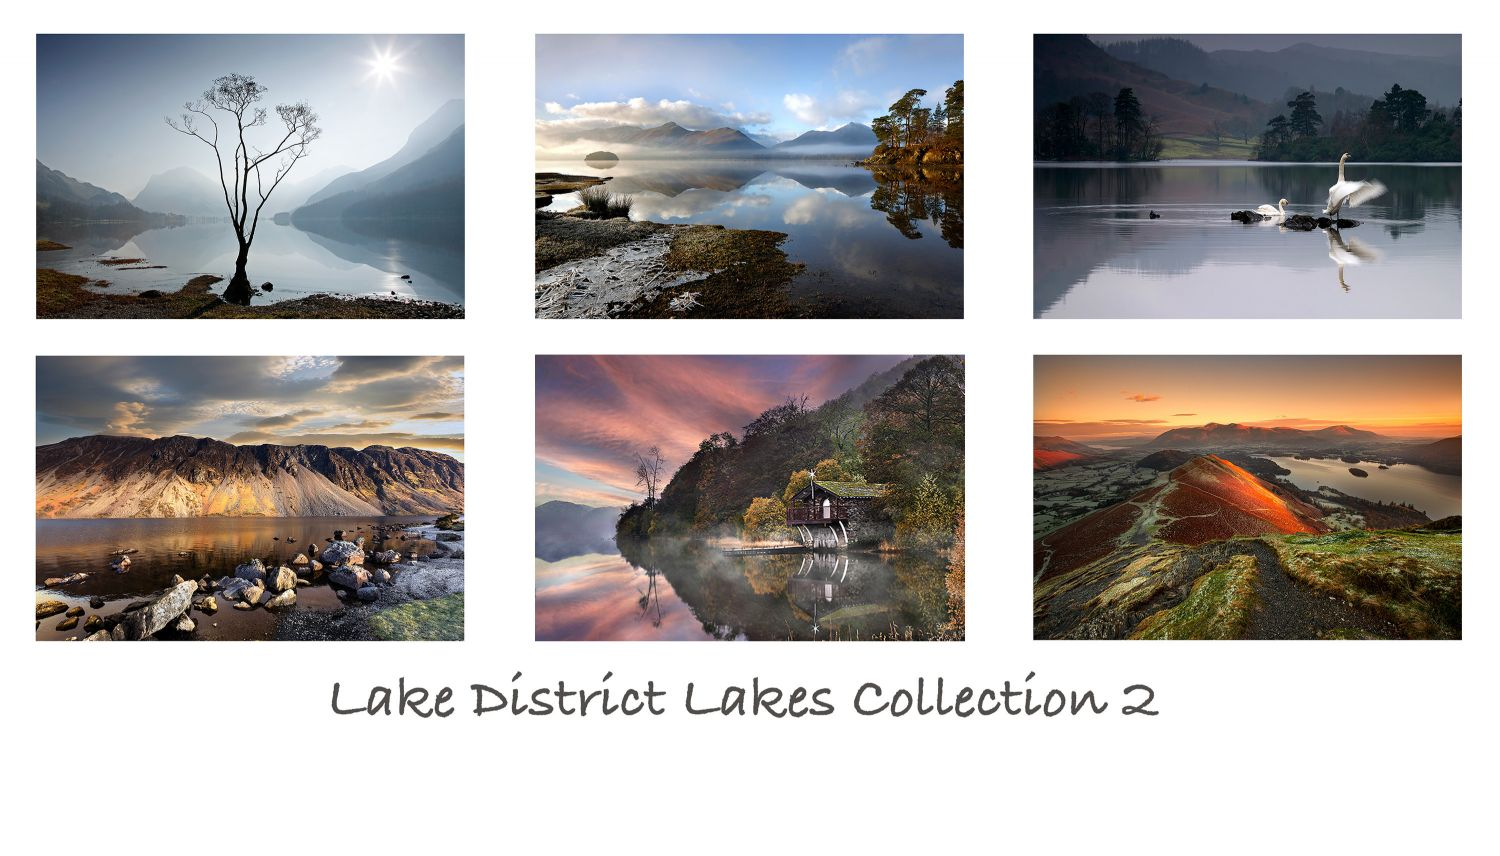 A pack of 6 Lake District Greeting Cards featuring stunningimages of some of the beautifulEnglishLake District lakes - Buttermere, Wastwater, Rydal Water, Ullswaterand Derwentwater.